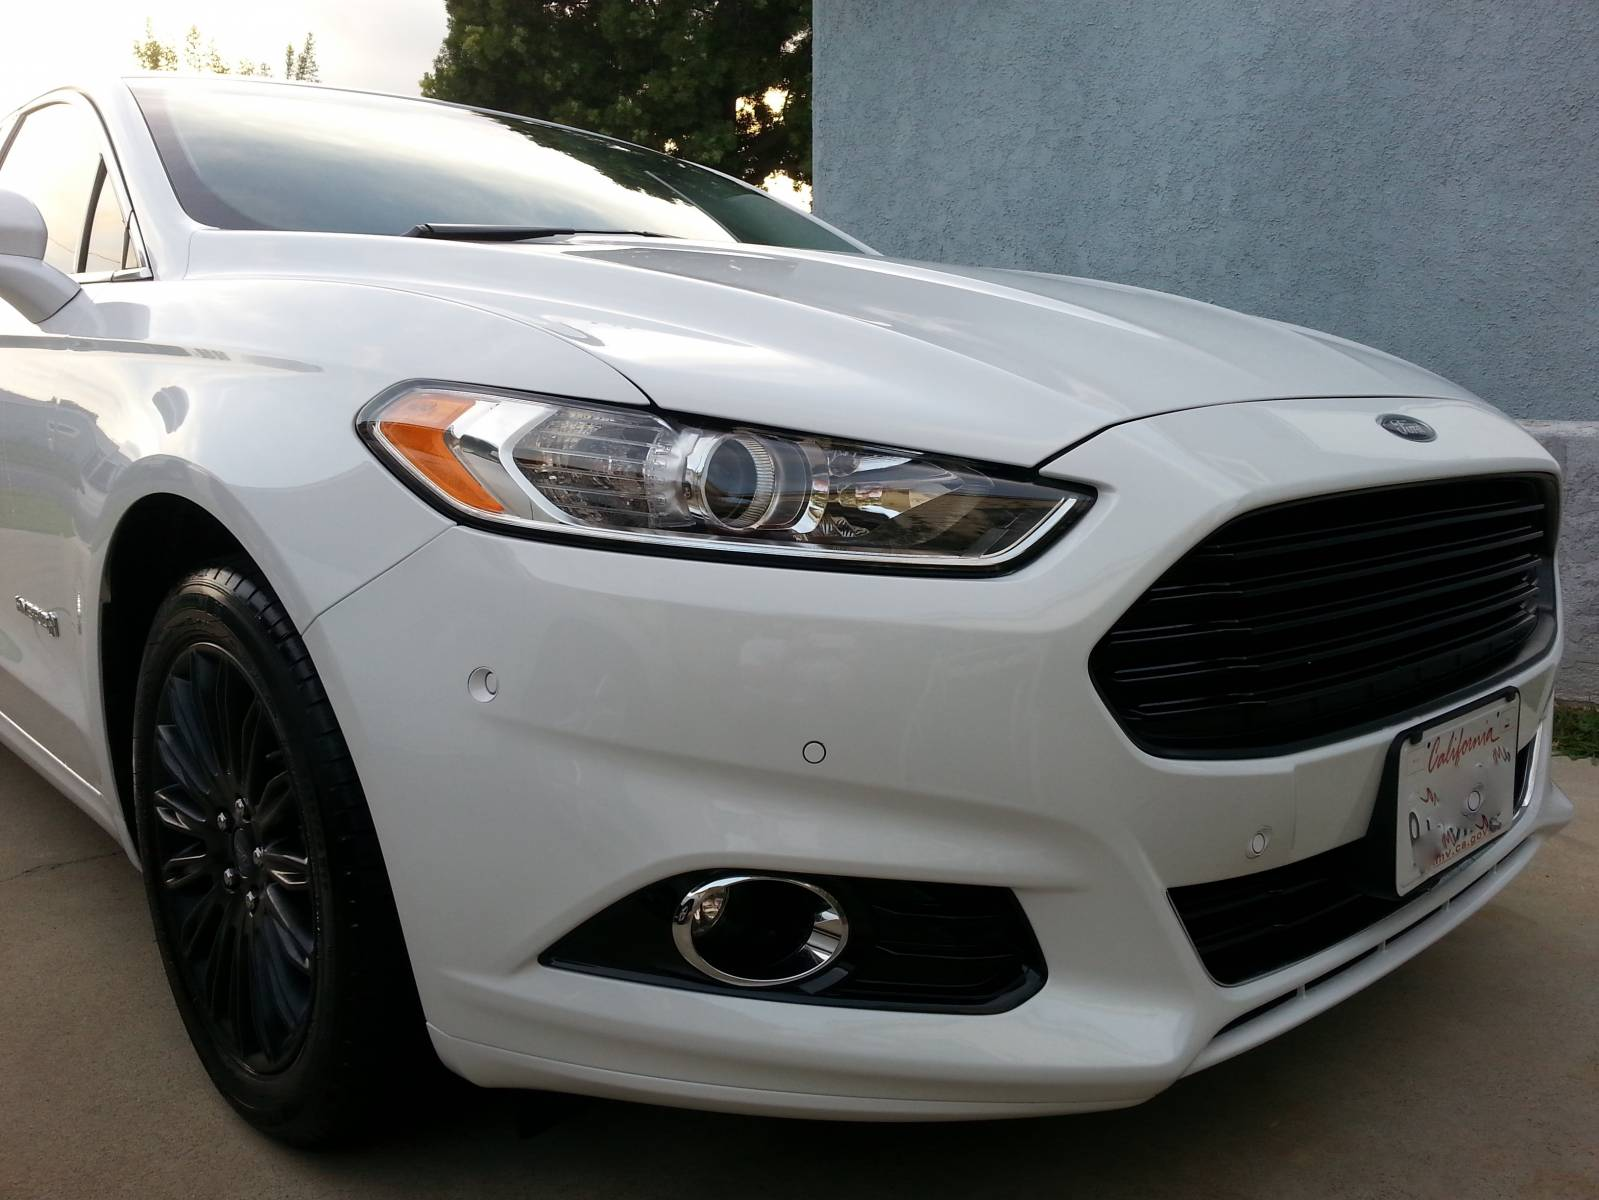 Blacked Out Grill And Wheels 2013 White Ffh Blacked Out Grill And